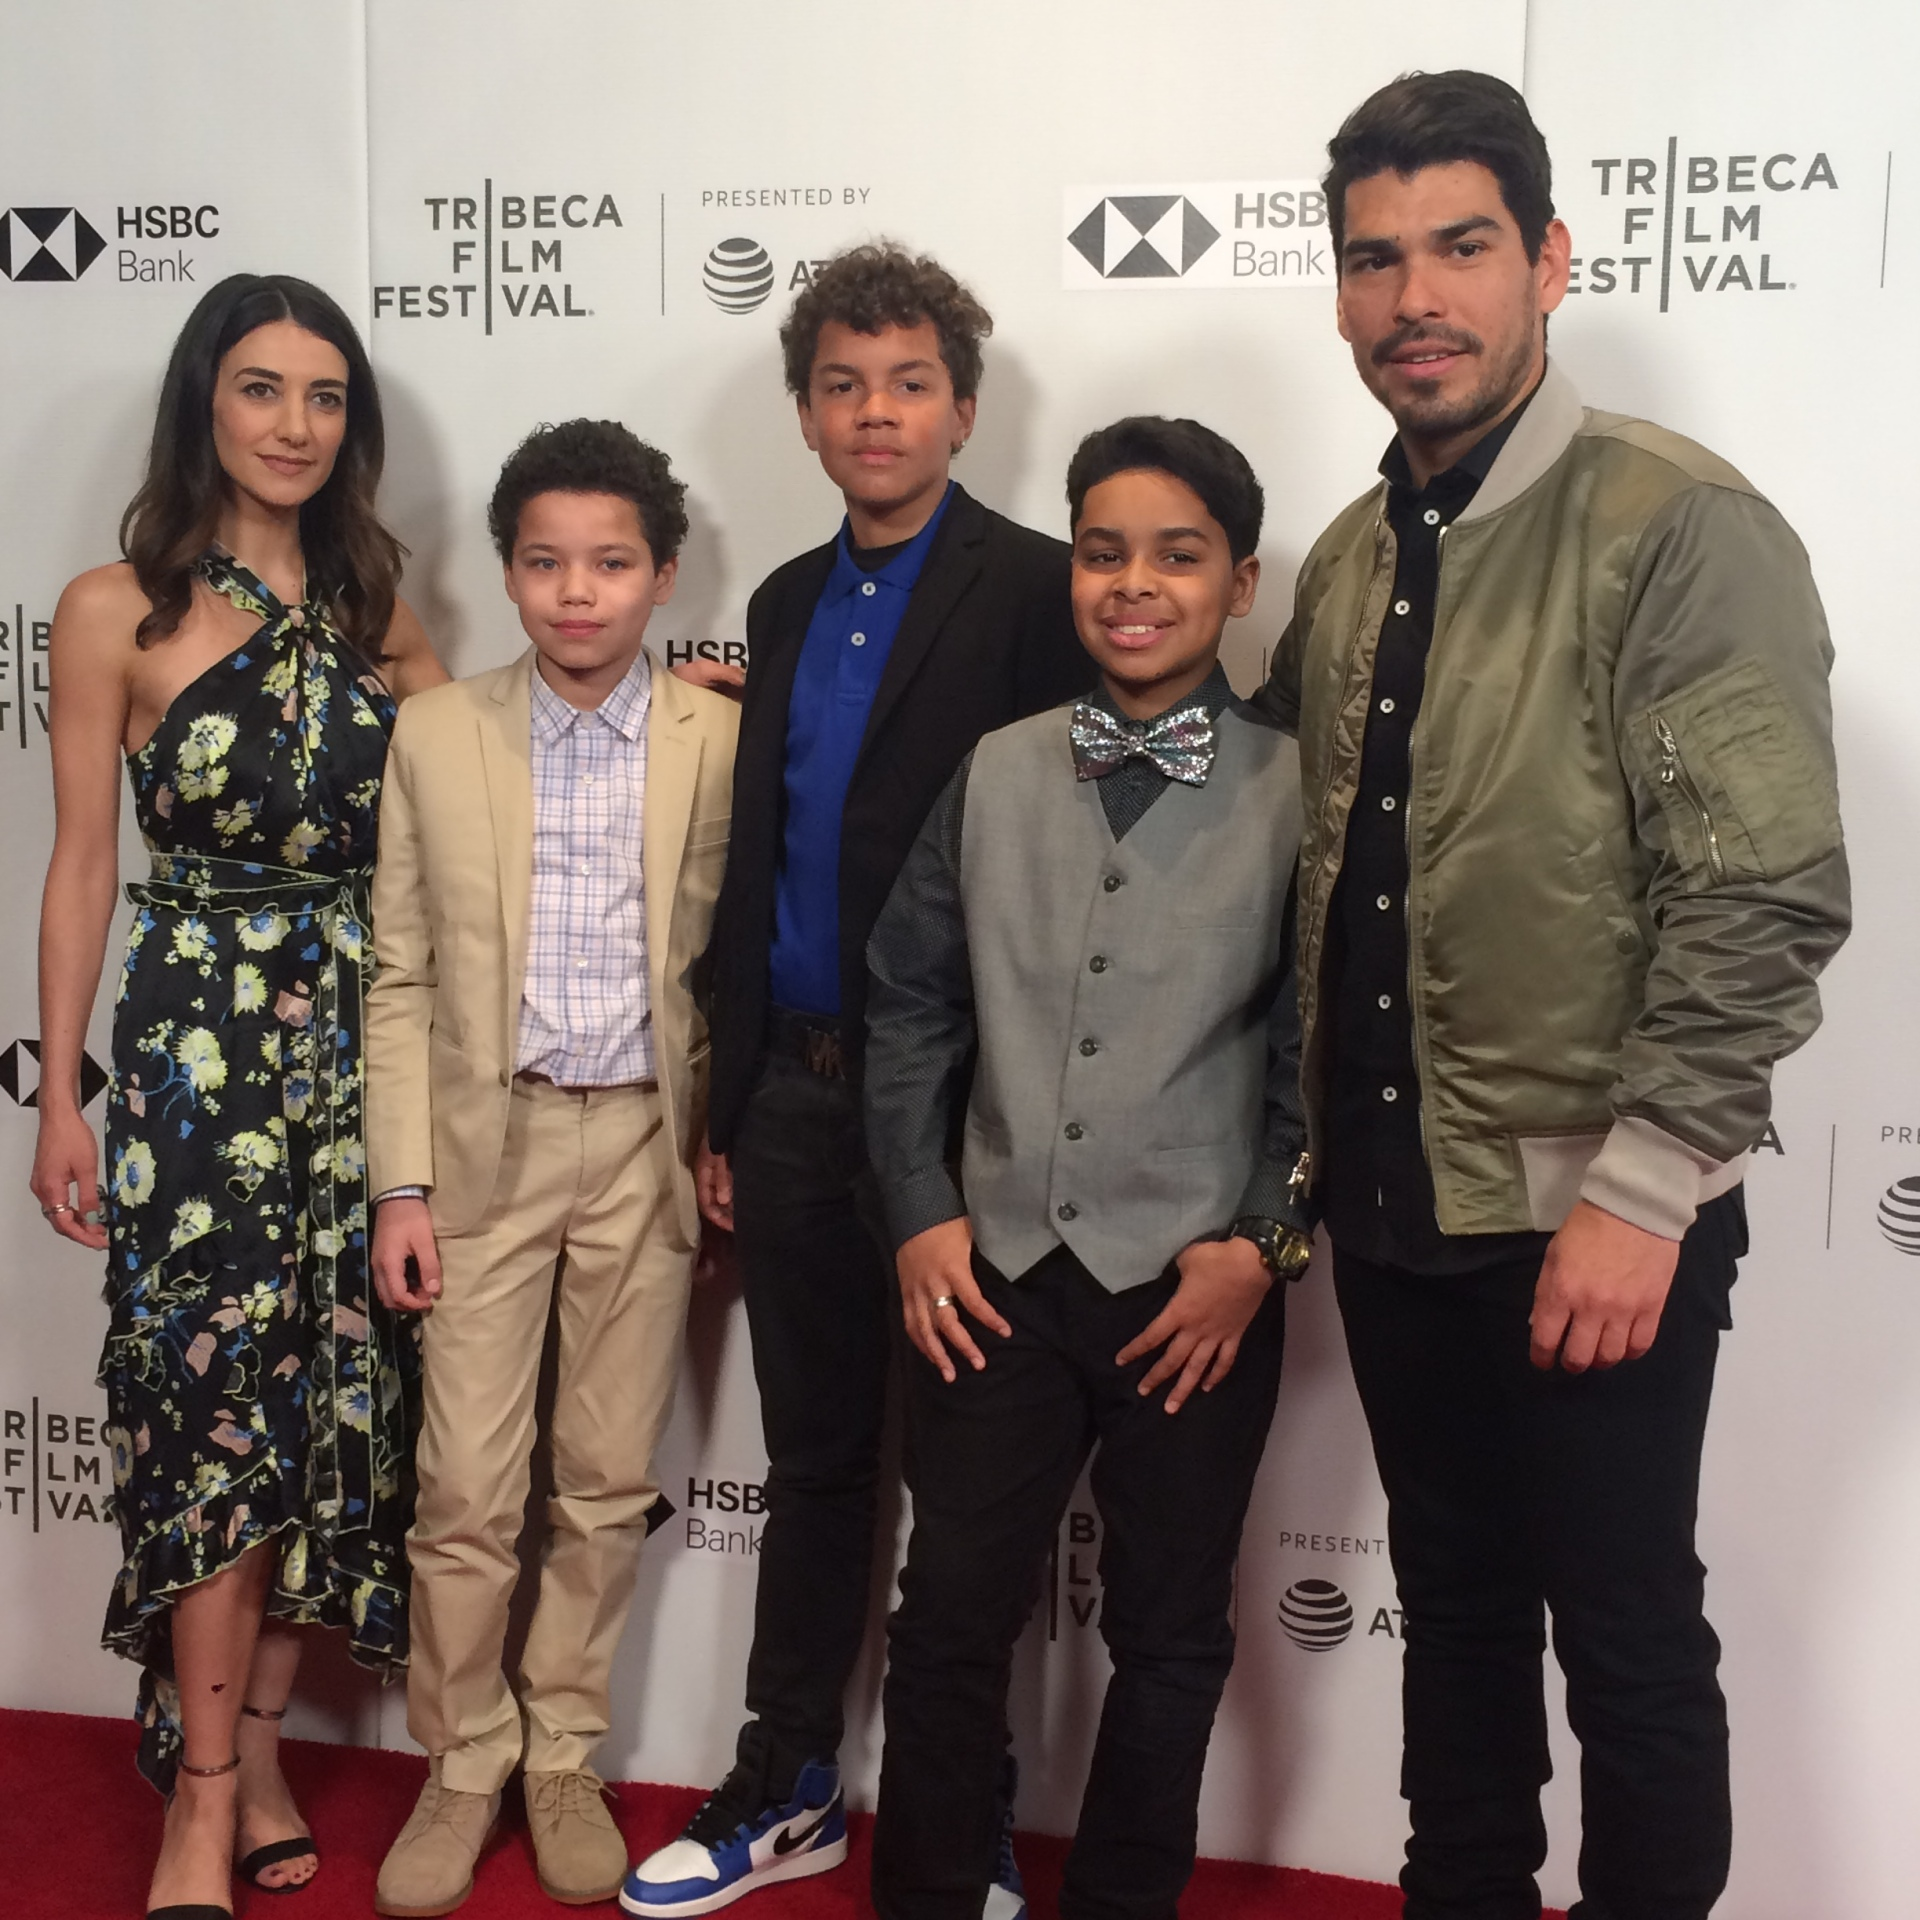 TRIBECA FILM FESTIVAL 2018 – NEW YORK – Pen To Paper Media